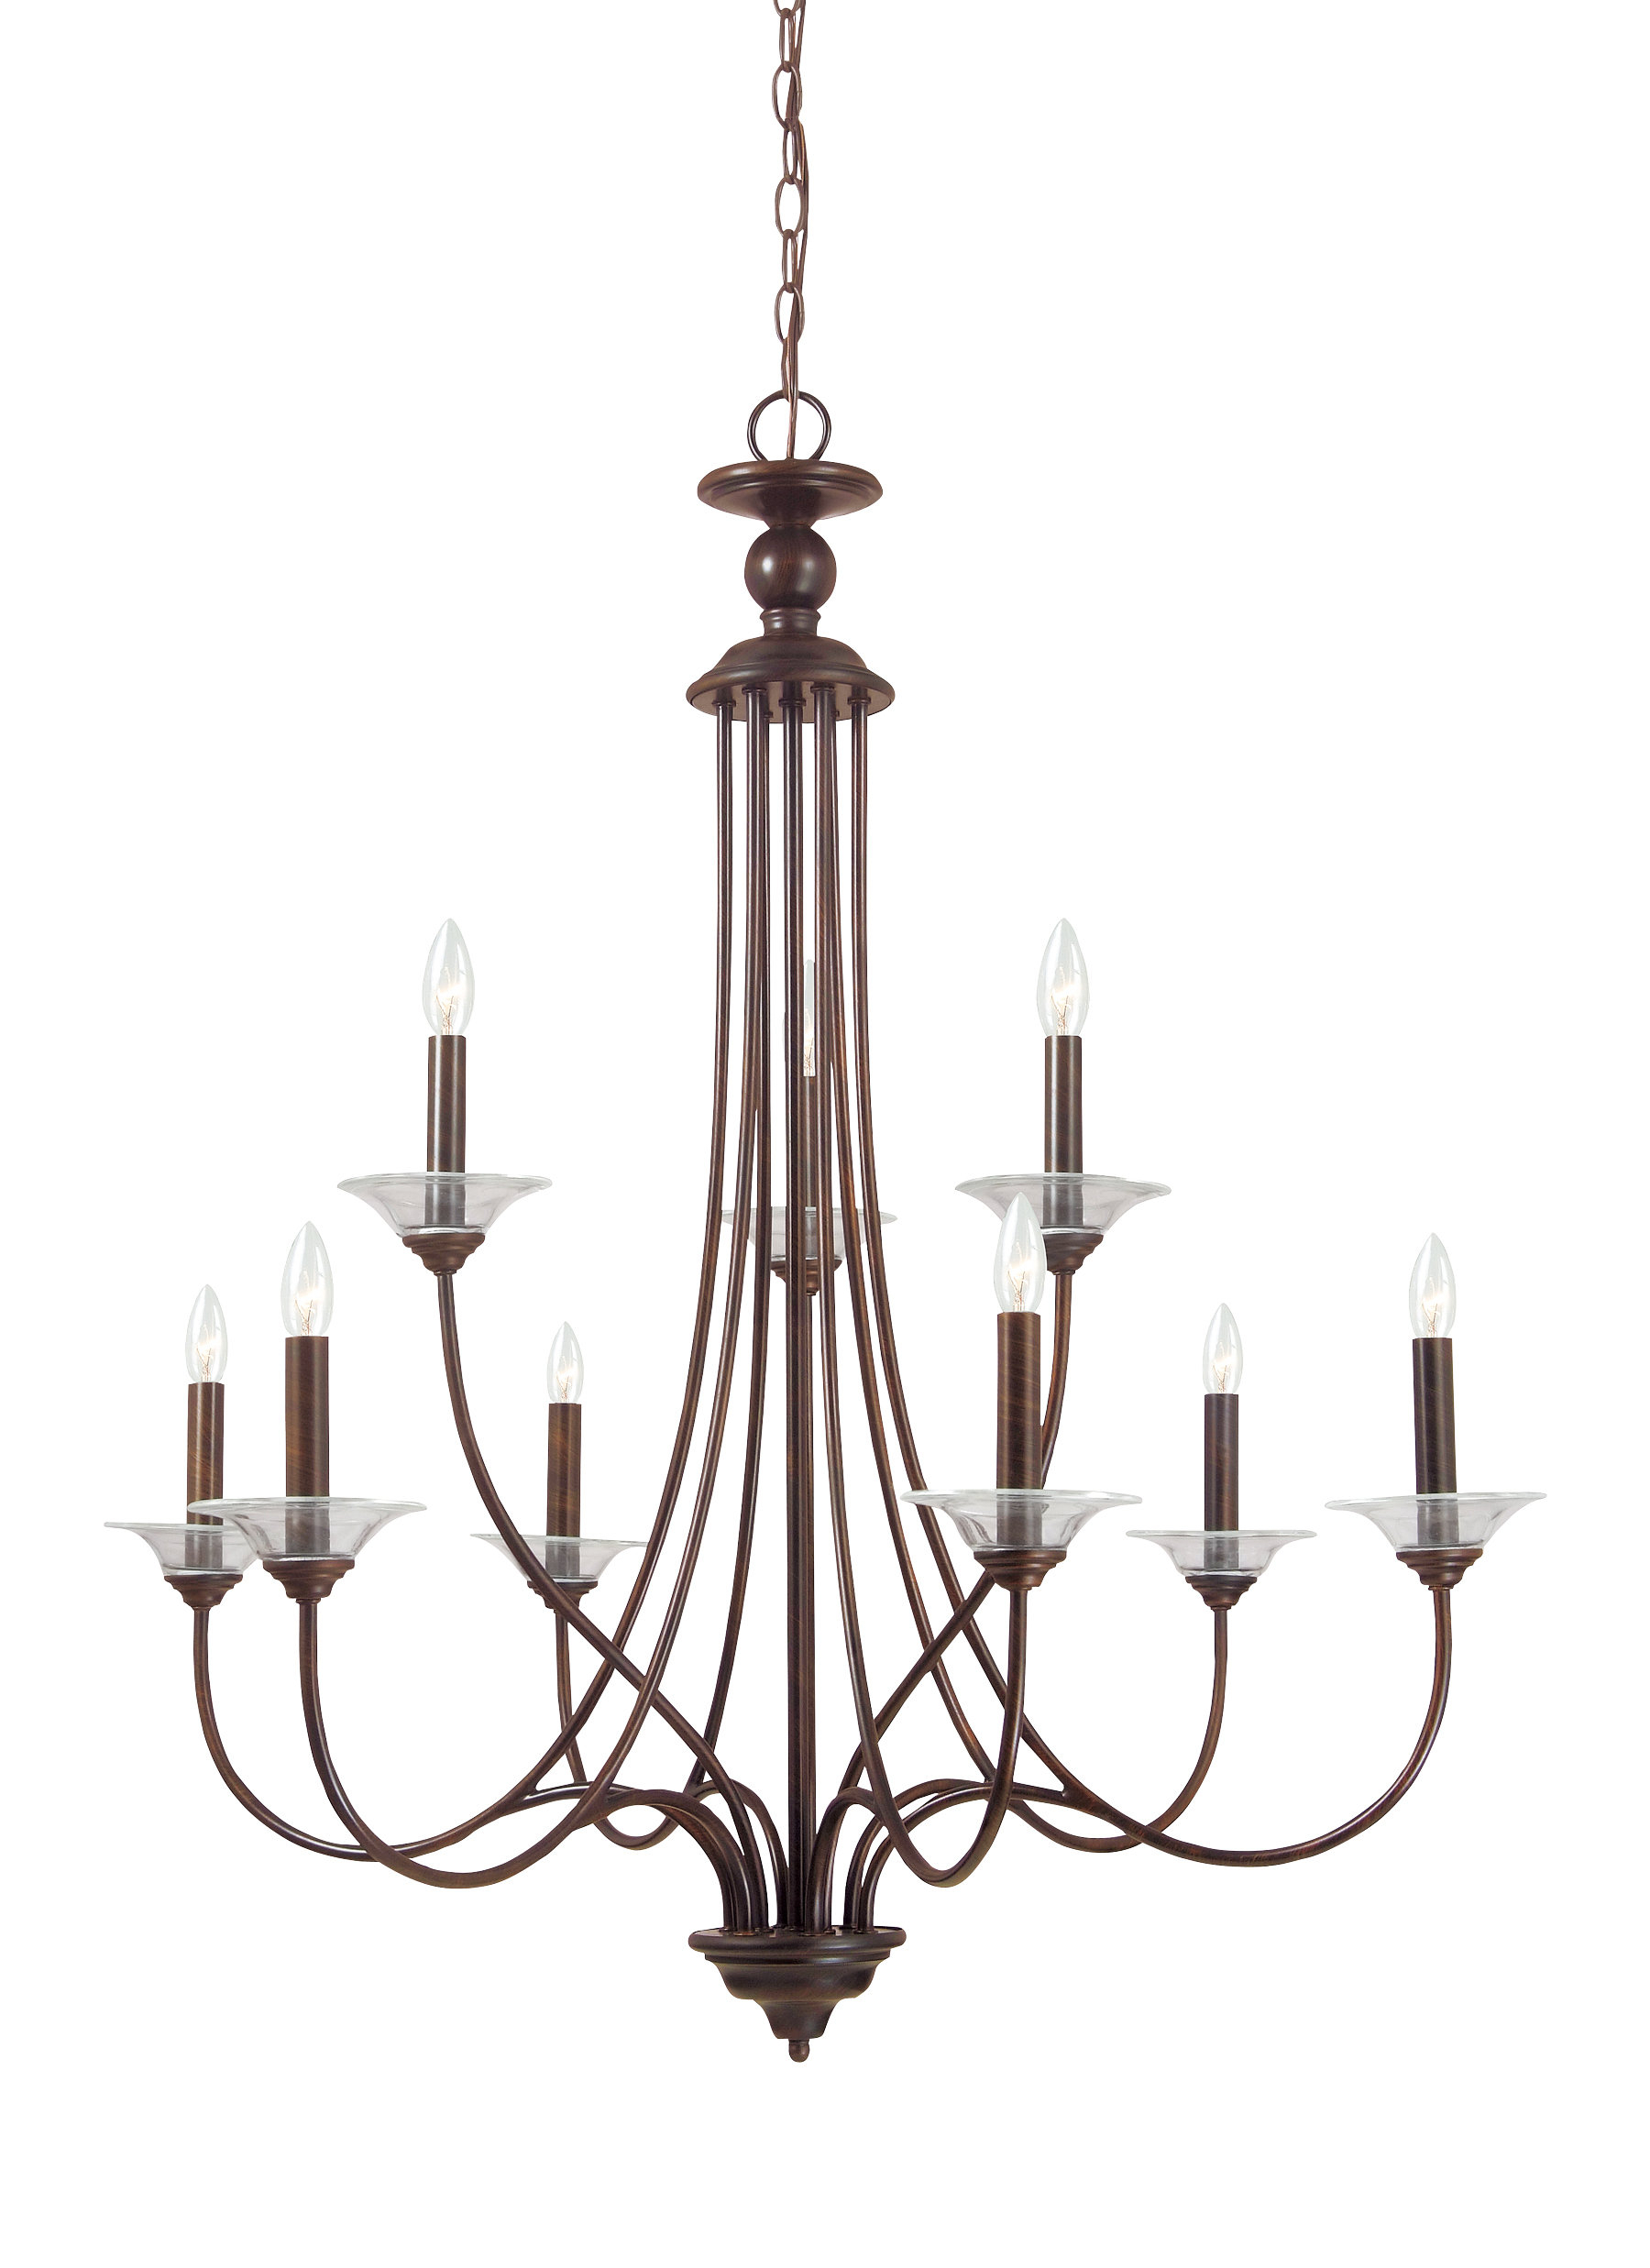 Barbro 9 Light Chandelier Pertaining To Gaines 9 Light Candle Style Chandeliers (View 10 of 30)